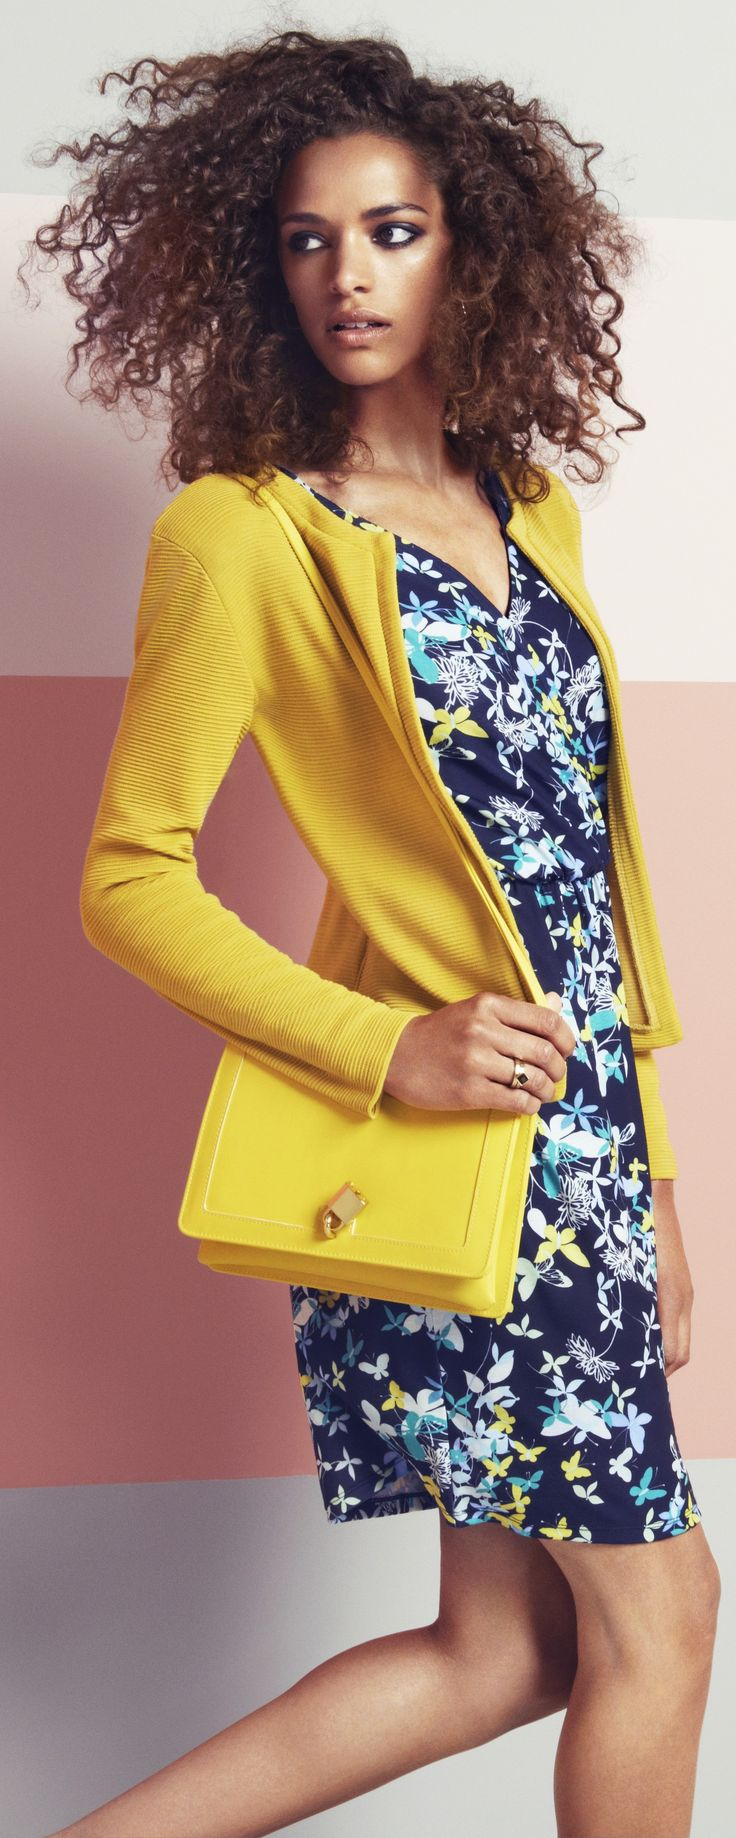 spring clothing. Cute yellow purse (and outfit) for spring 2015 for a zap of color. House of fraser. Get it now to add a pop of winter happiness to your outfits - or - Read tips for travel handbags - (updated article) - http://www.boomerinas.com/2013/02/02/best-crossbody-bags-for-travel-women-over-40-50-60/